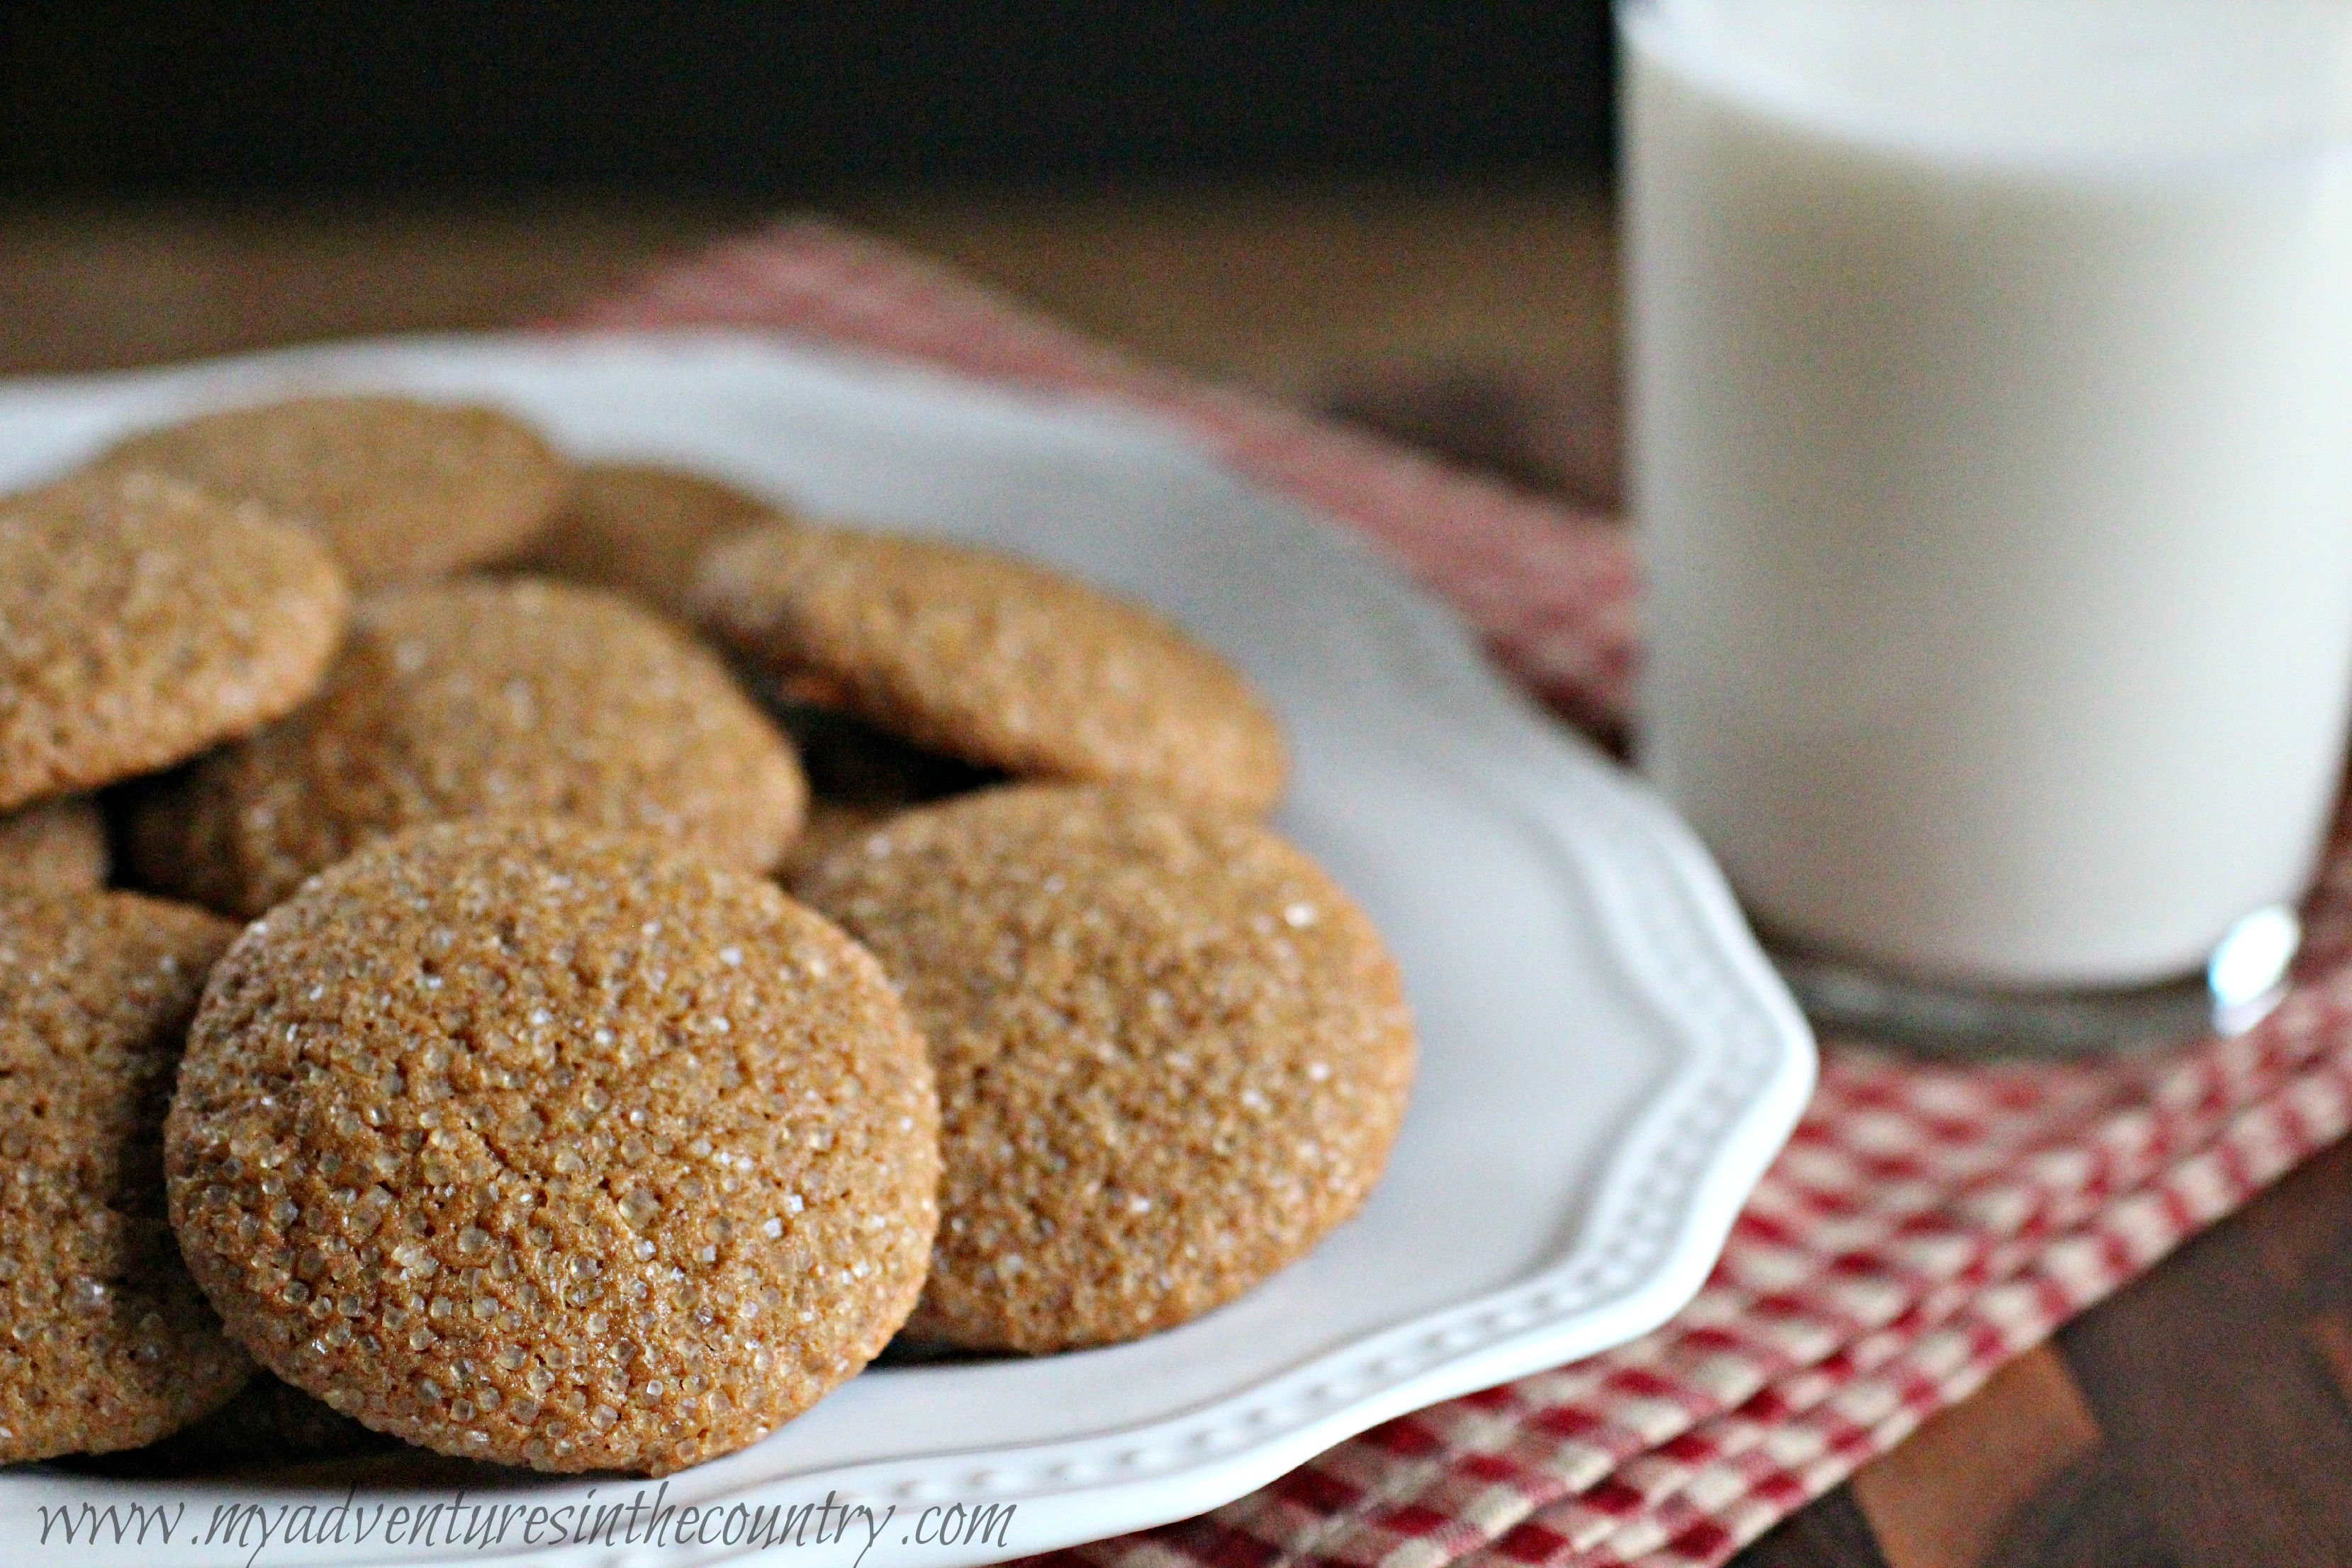 Monday's Mystery Recipe Episode 21: Ice-Capped Gingersnaps (Minus the Ice Cap)